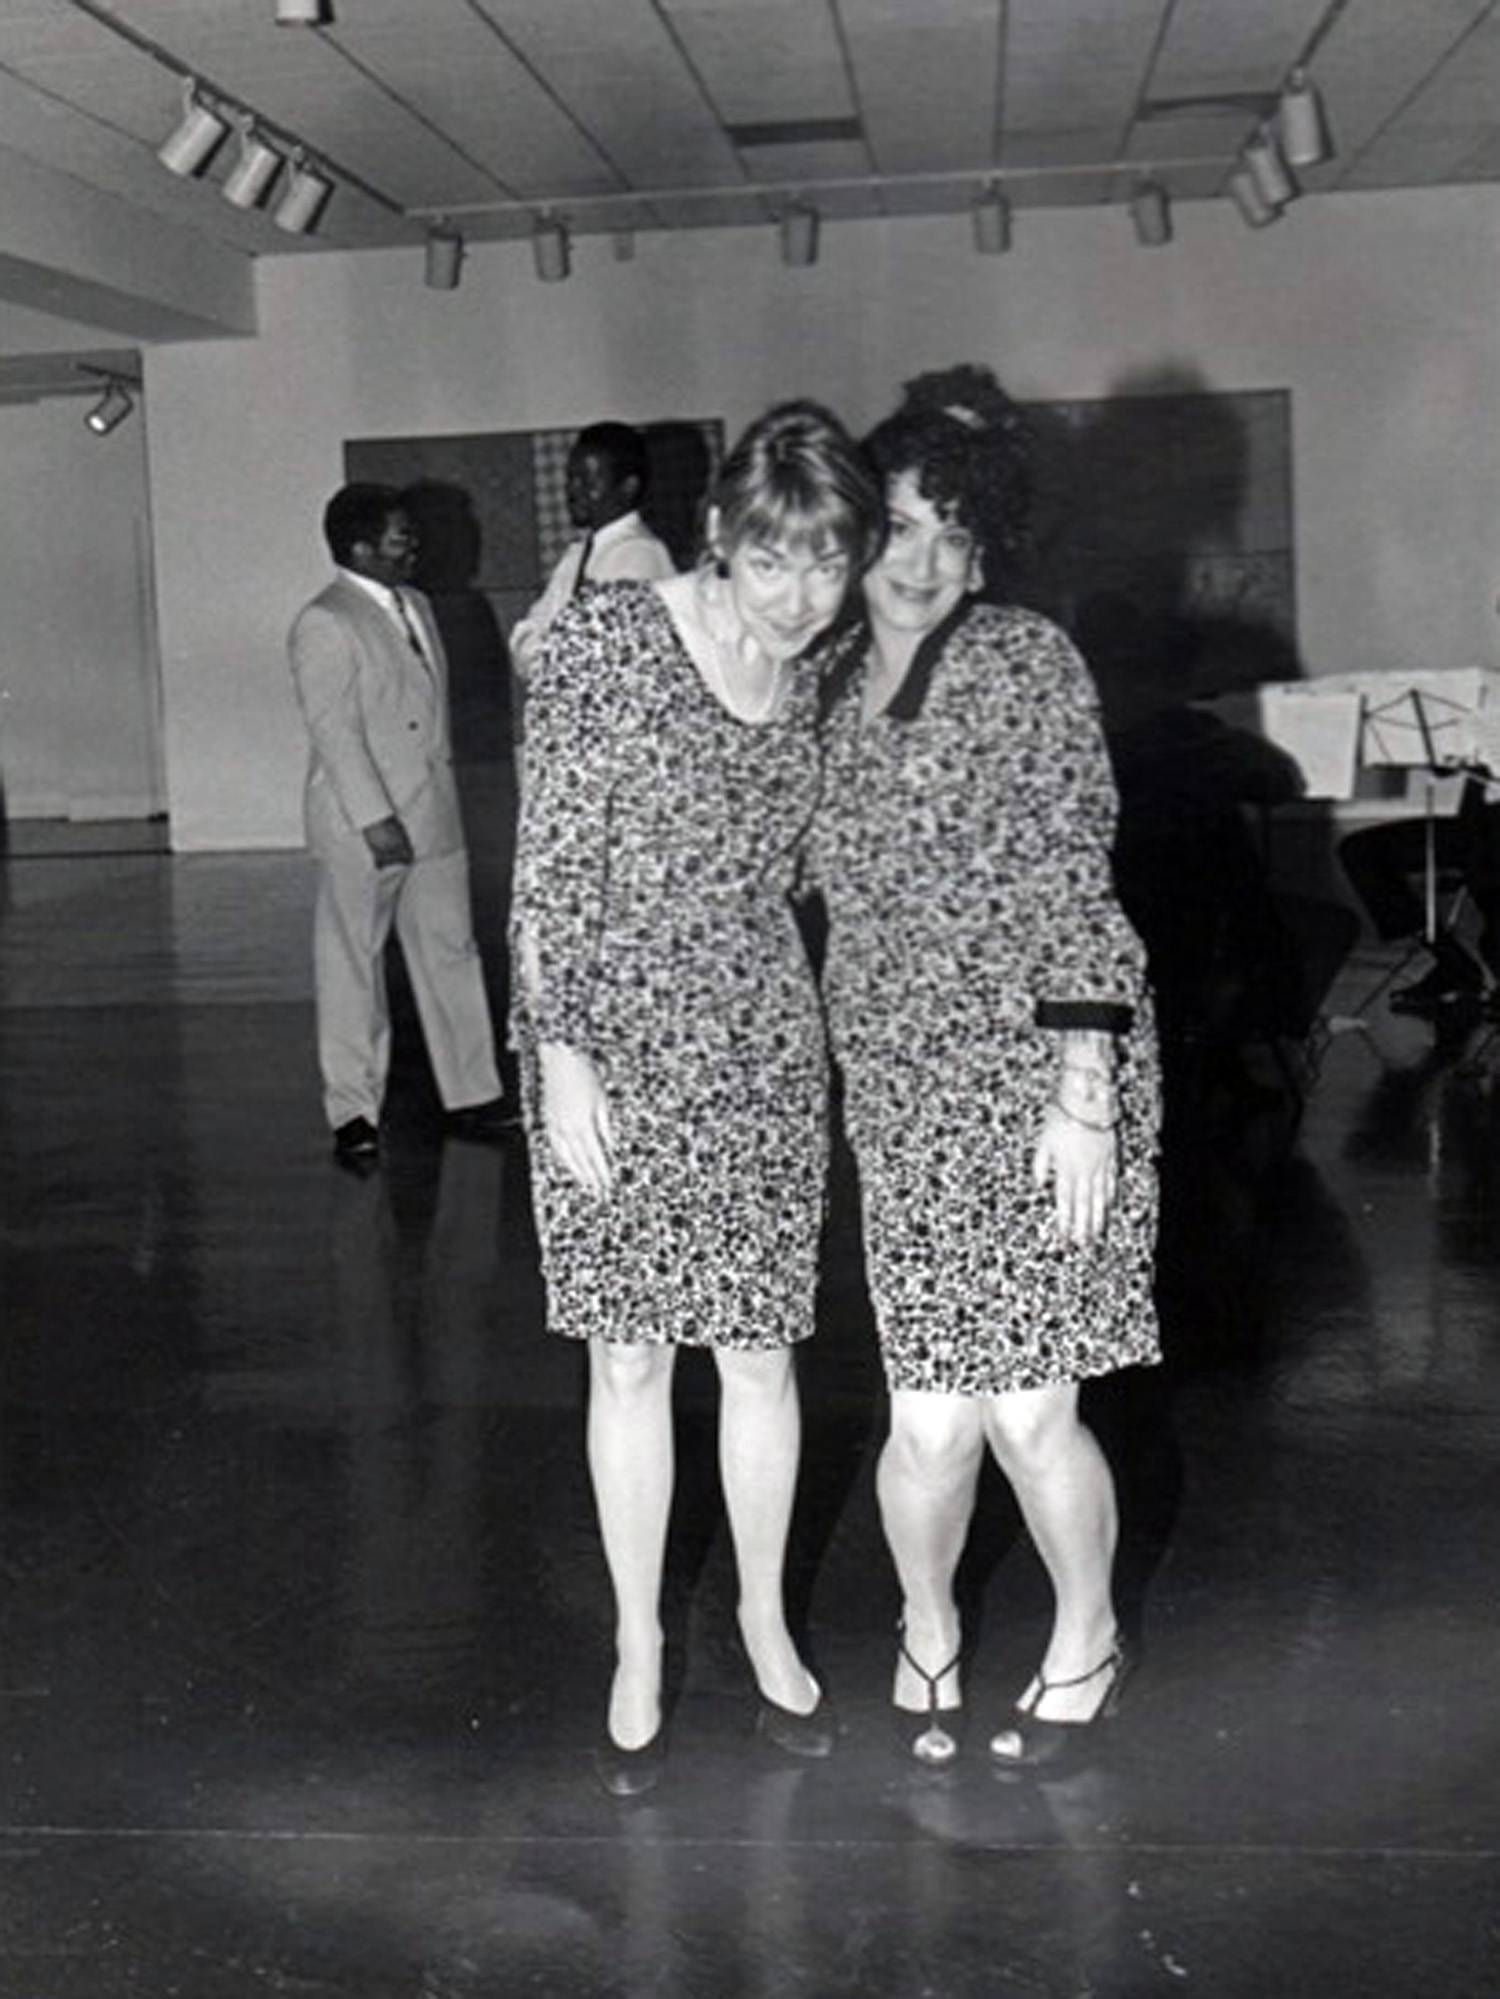 Anne Edgar, public information officer (left) and Ileen Shepard, director of exhibitions, c. 1985.